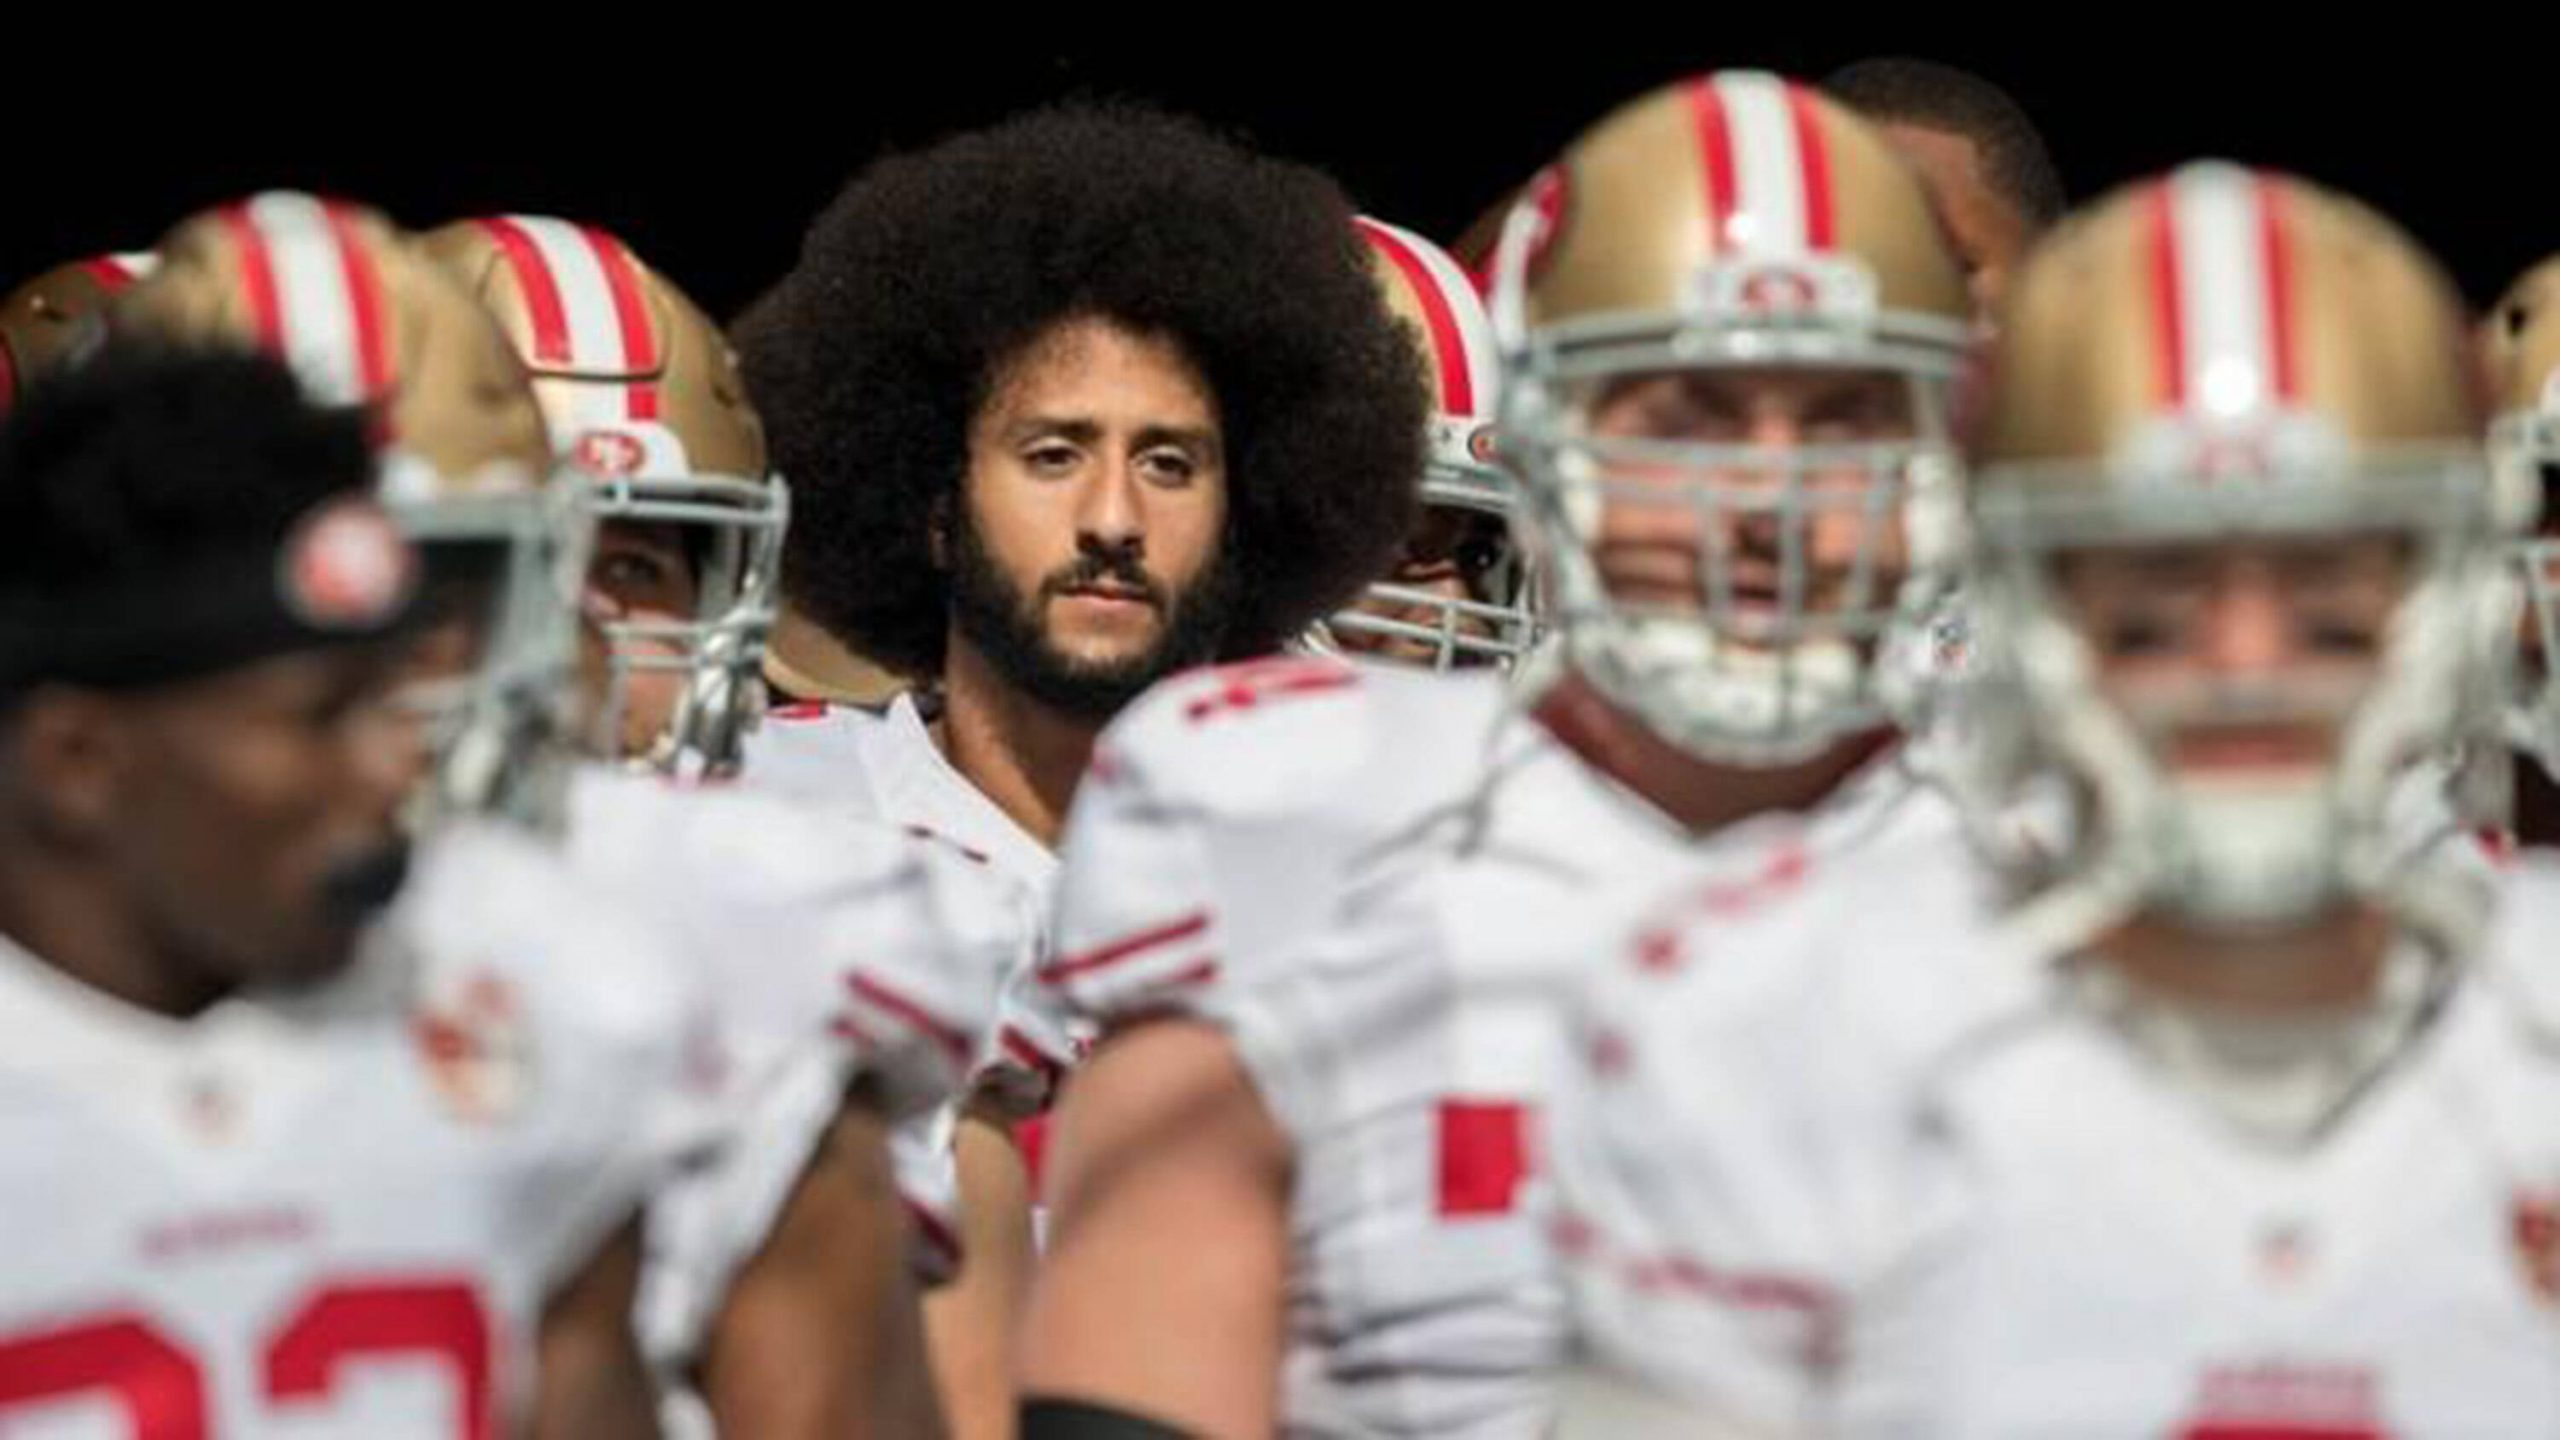 January 25, 2020, USA: Colin Kaepernick waits to enter the field with the 49ers before a 2016 game against the Dolphins